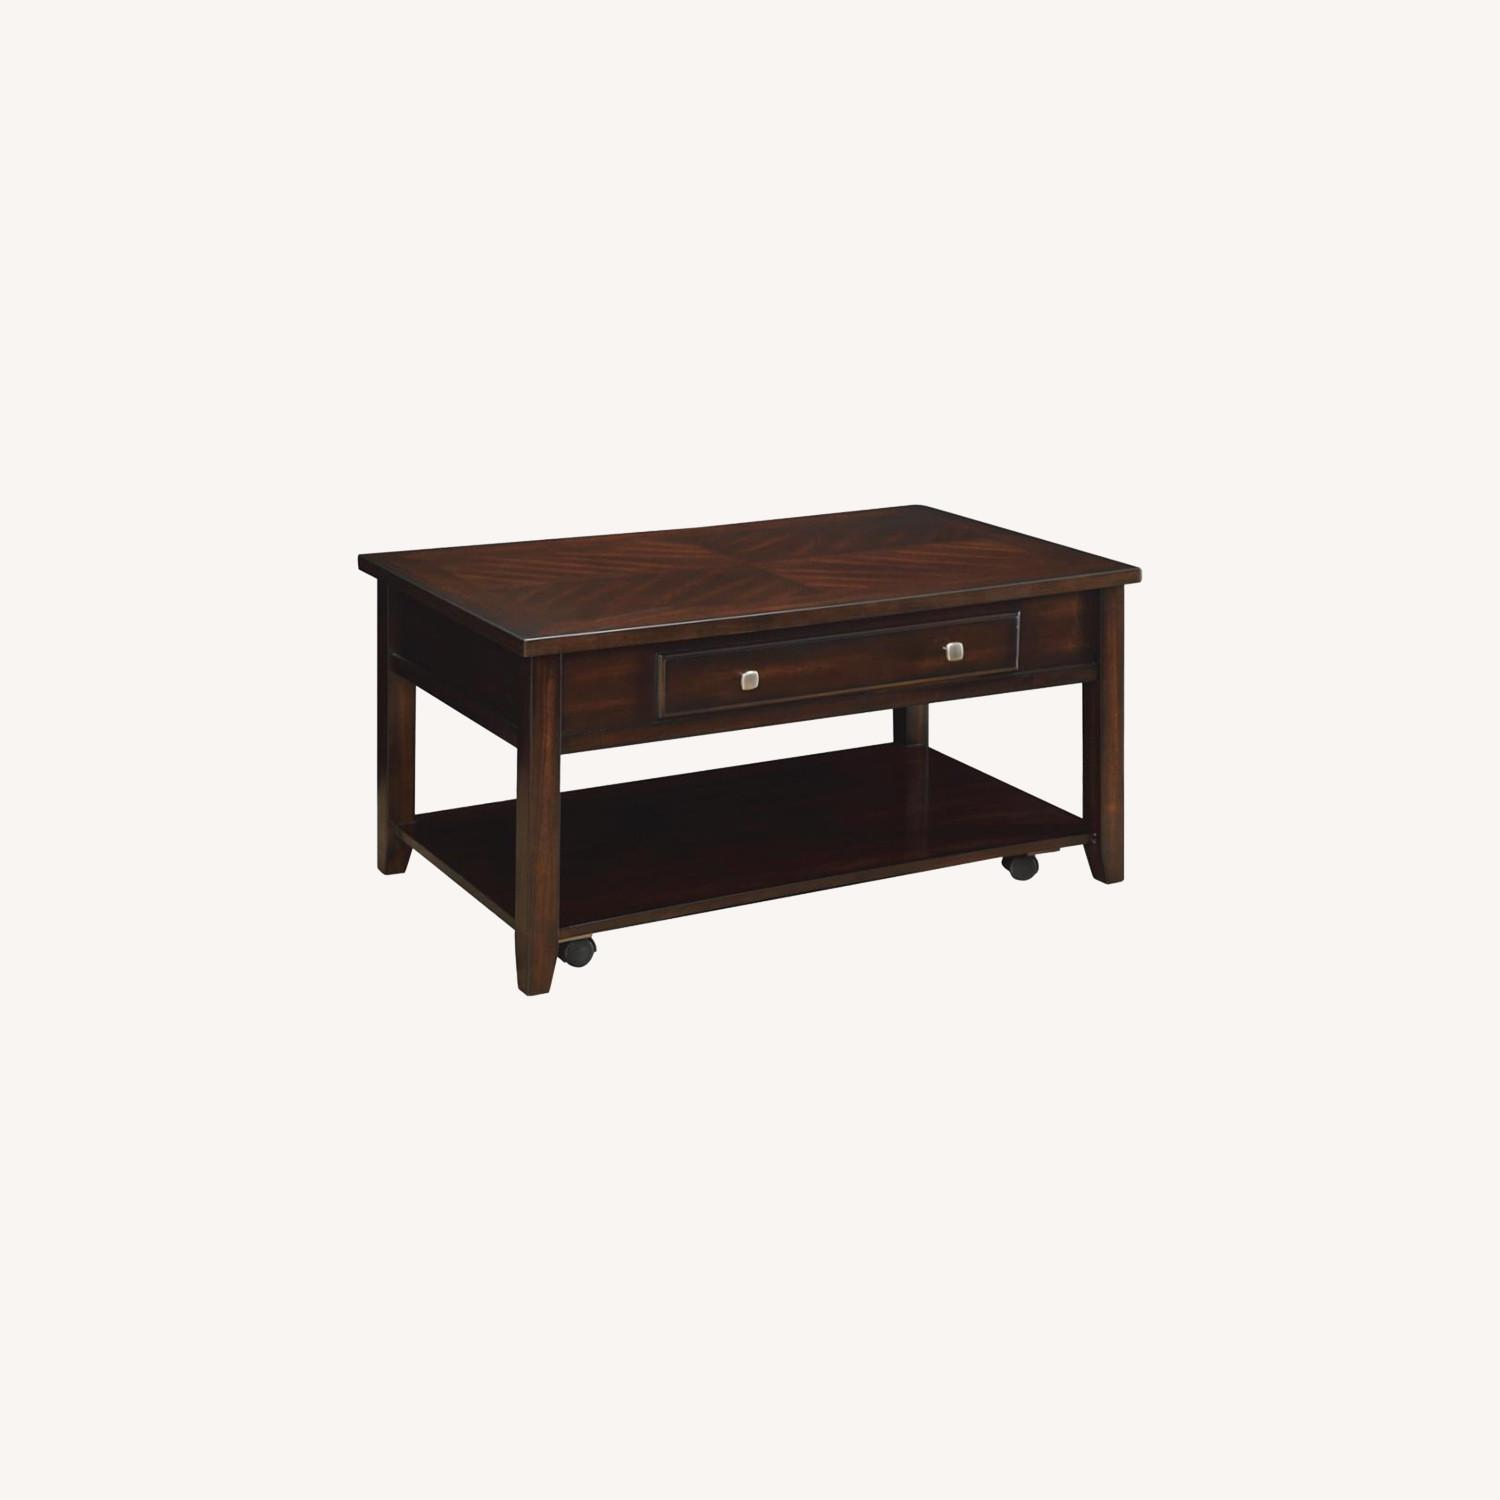 Lift Top Coffee Table In Walnut Finish W/ Shelves - image-5